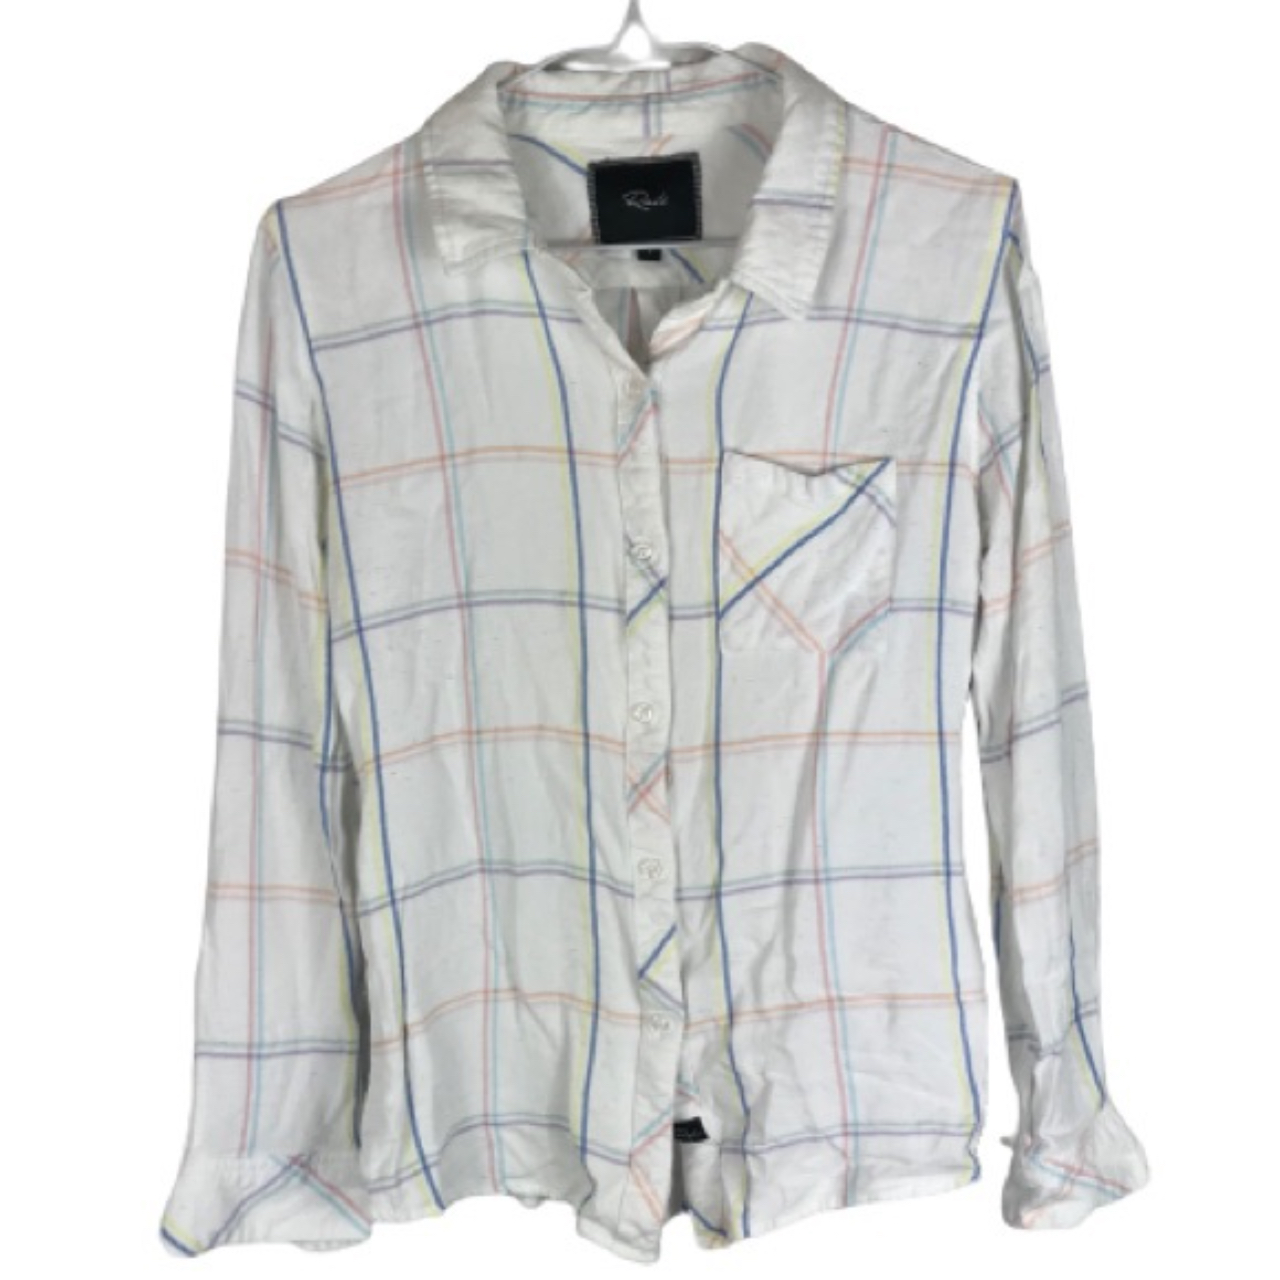 Product Image 1 - Hunter white button down shirt